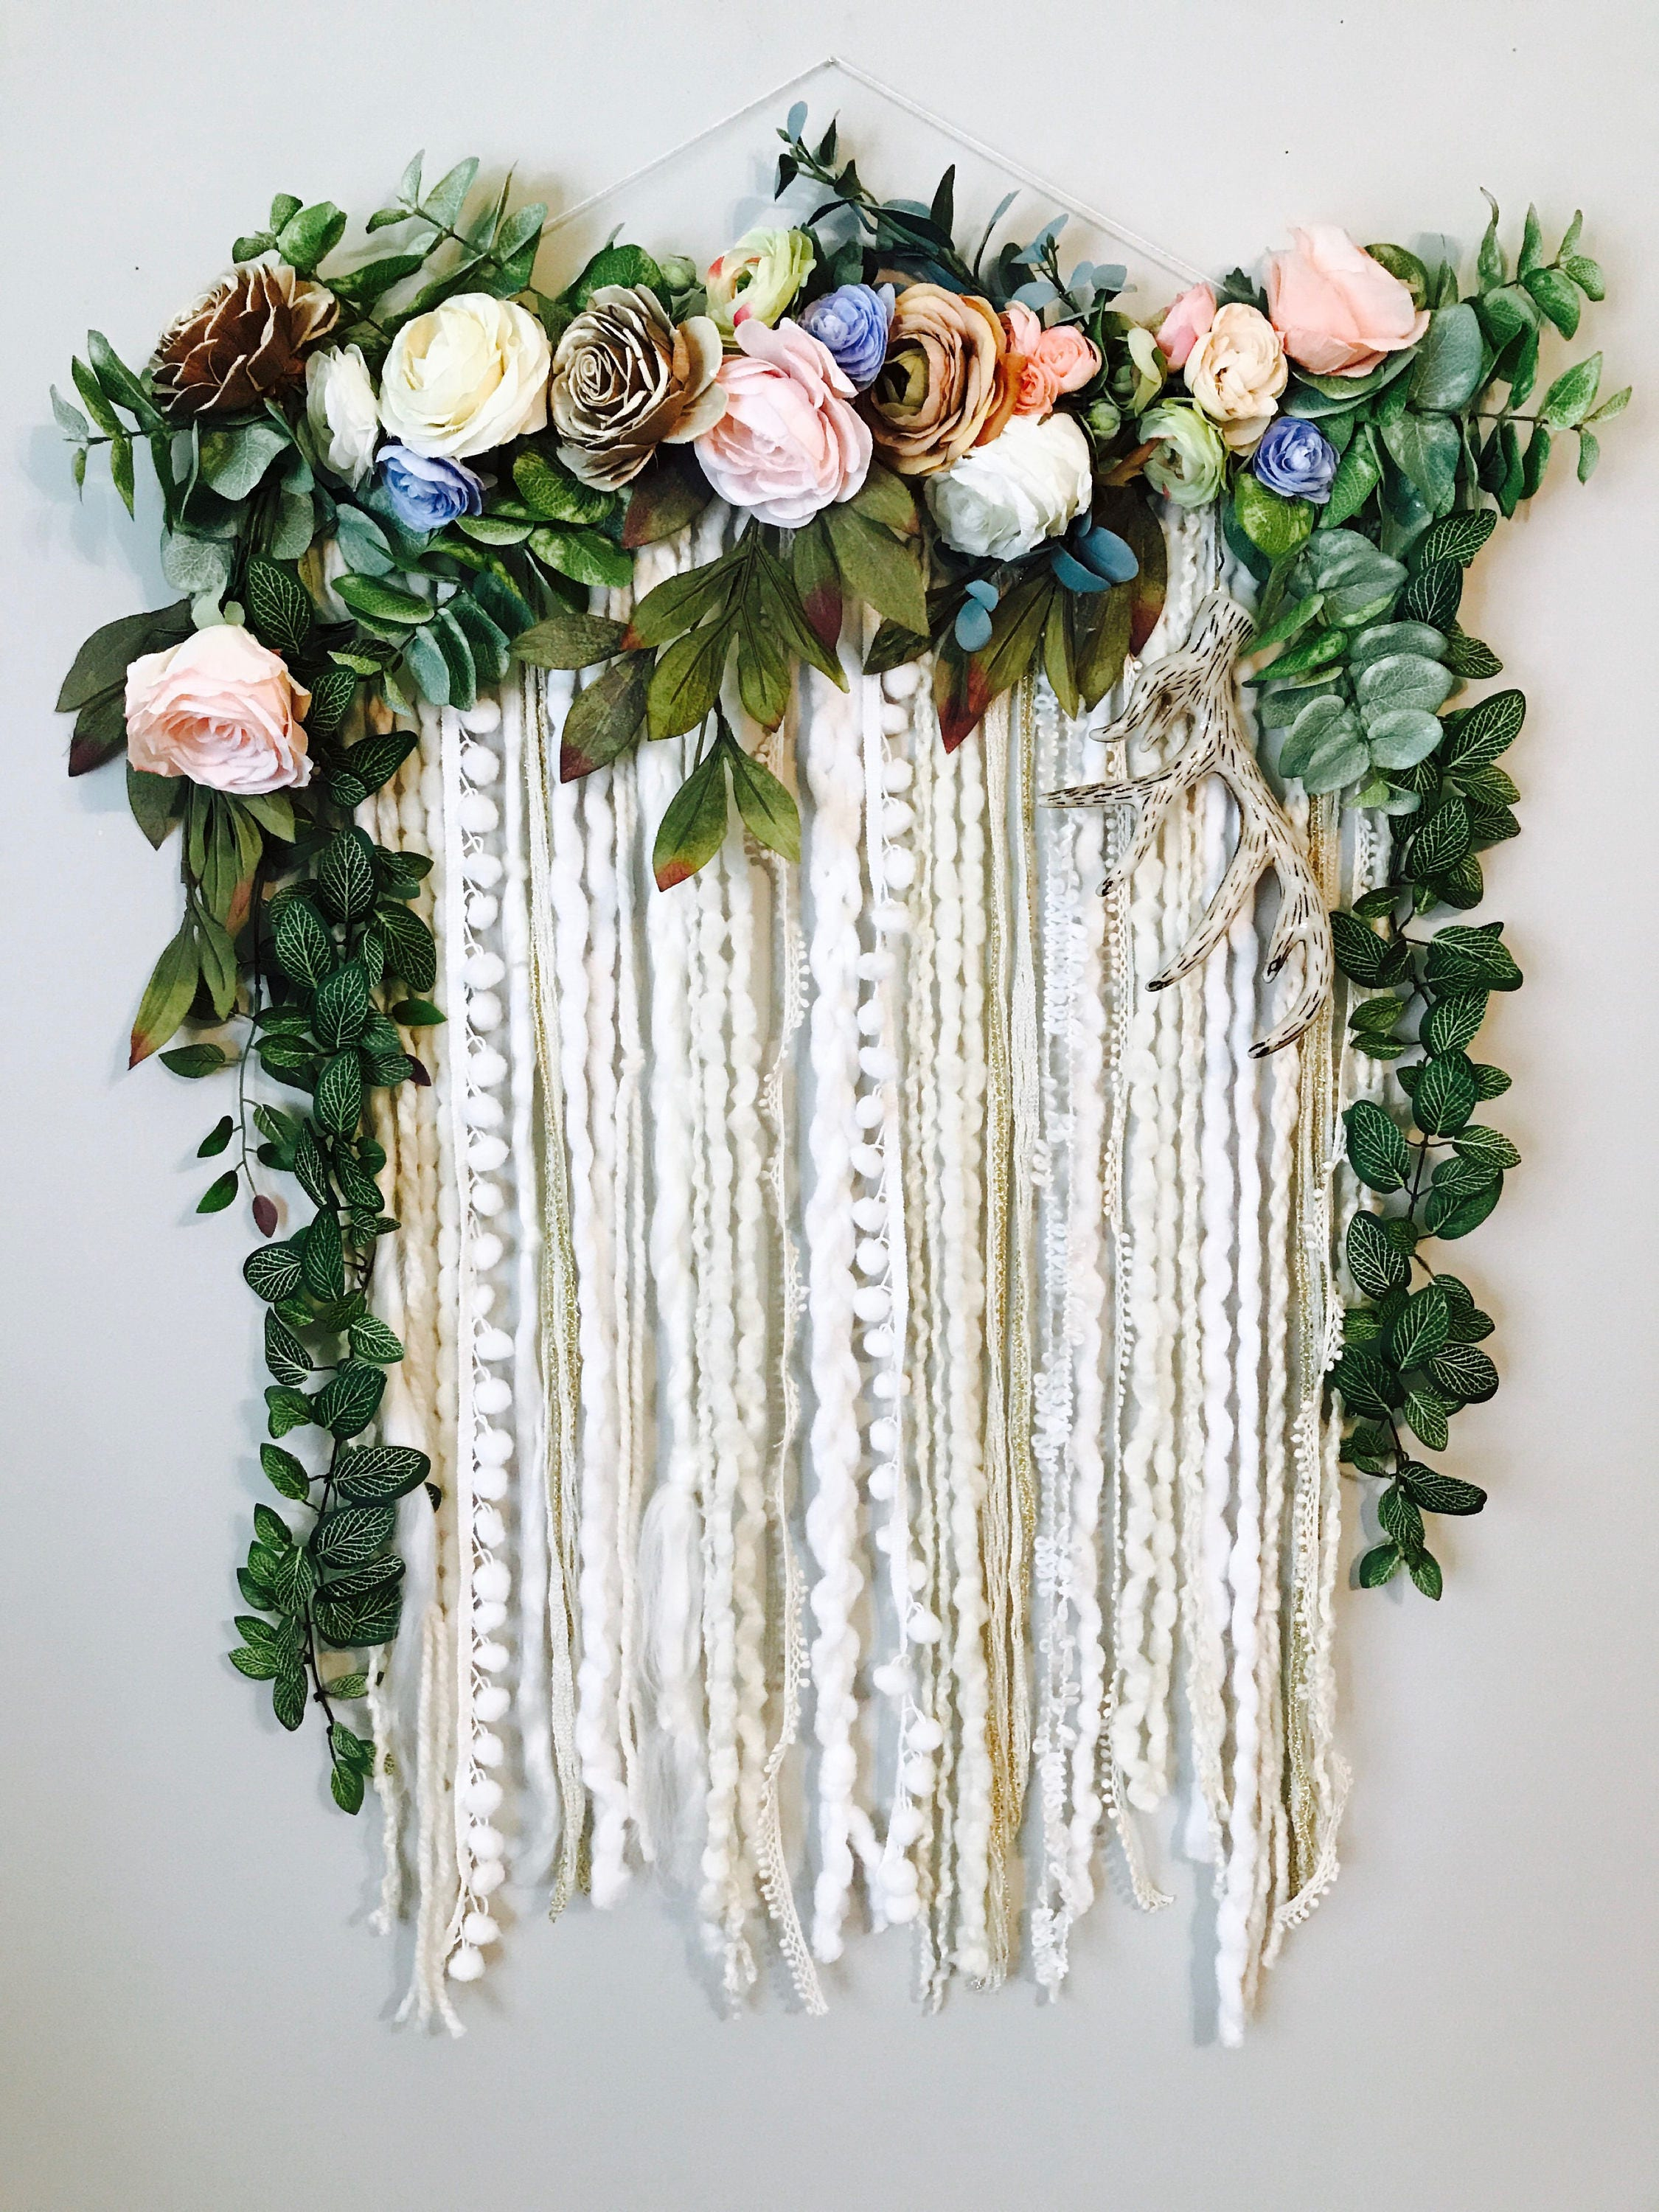 Floral Decor: Wall Hanging Floral Wall Hanging Flower Wall Art Large Wall